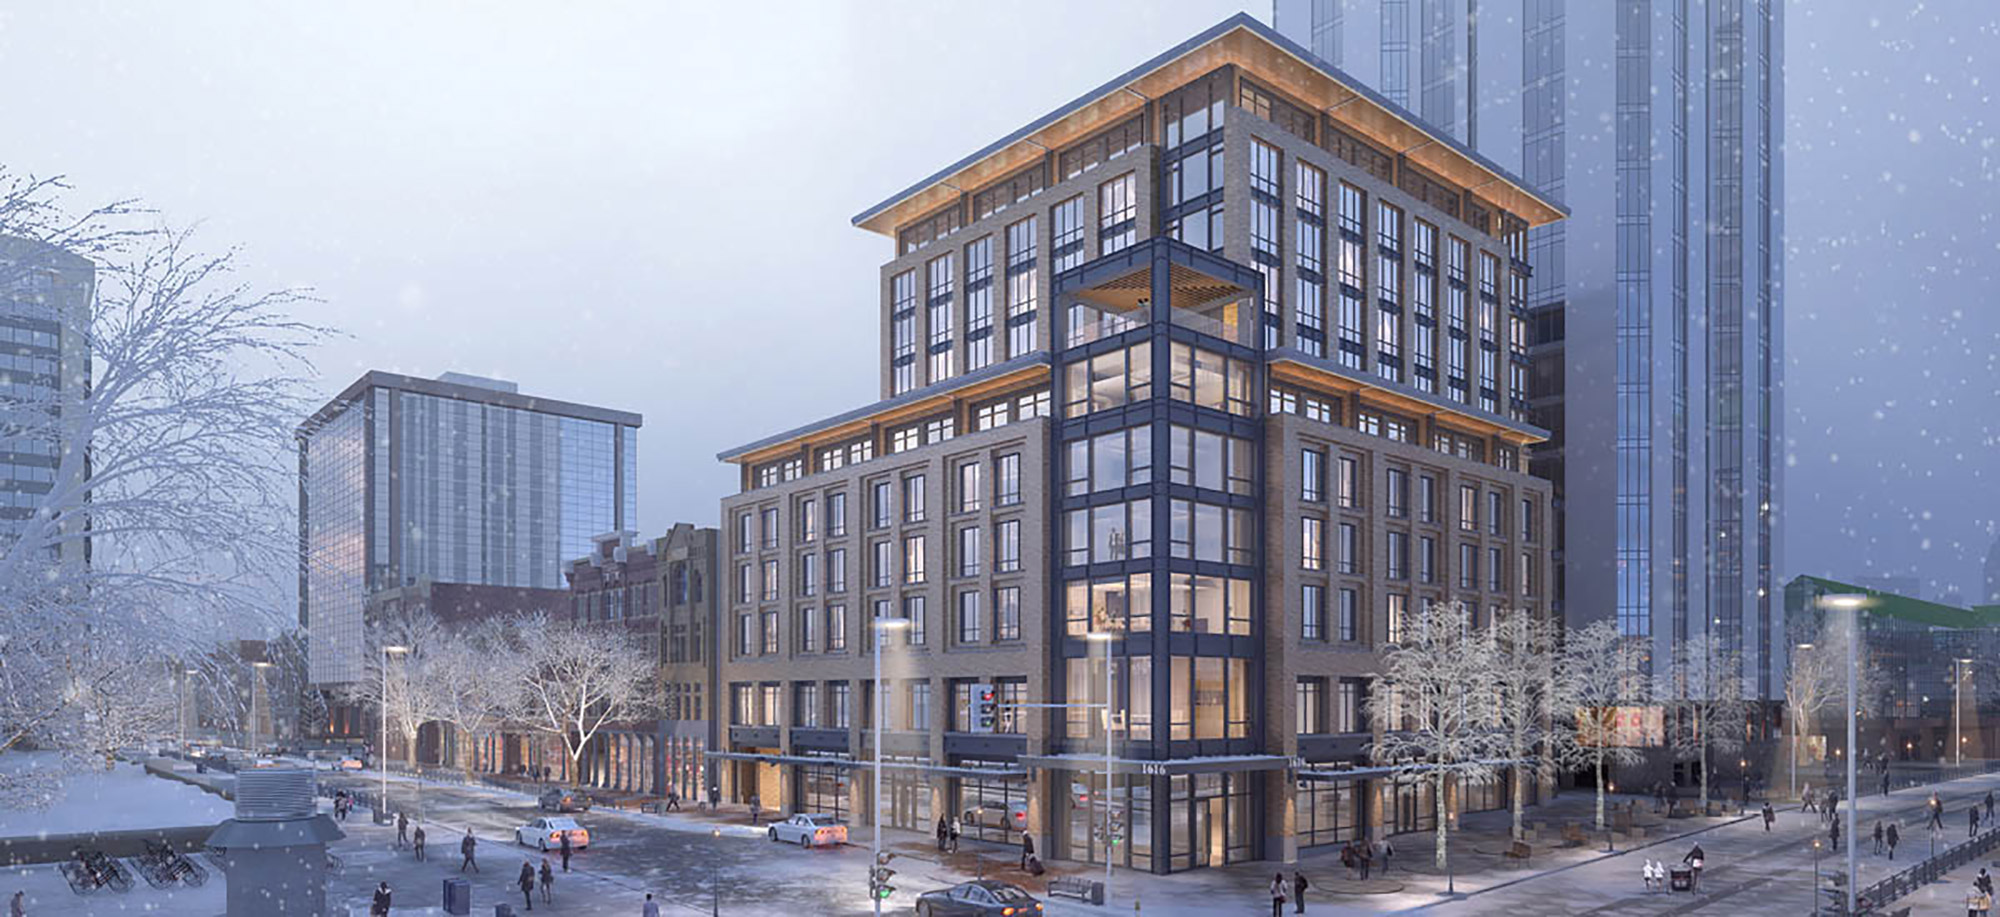 Rendering of 1600 Market Hotel, courtesy of DLR Group